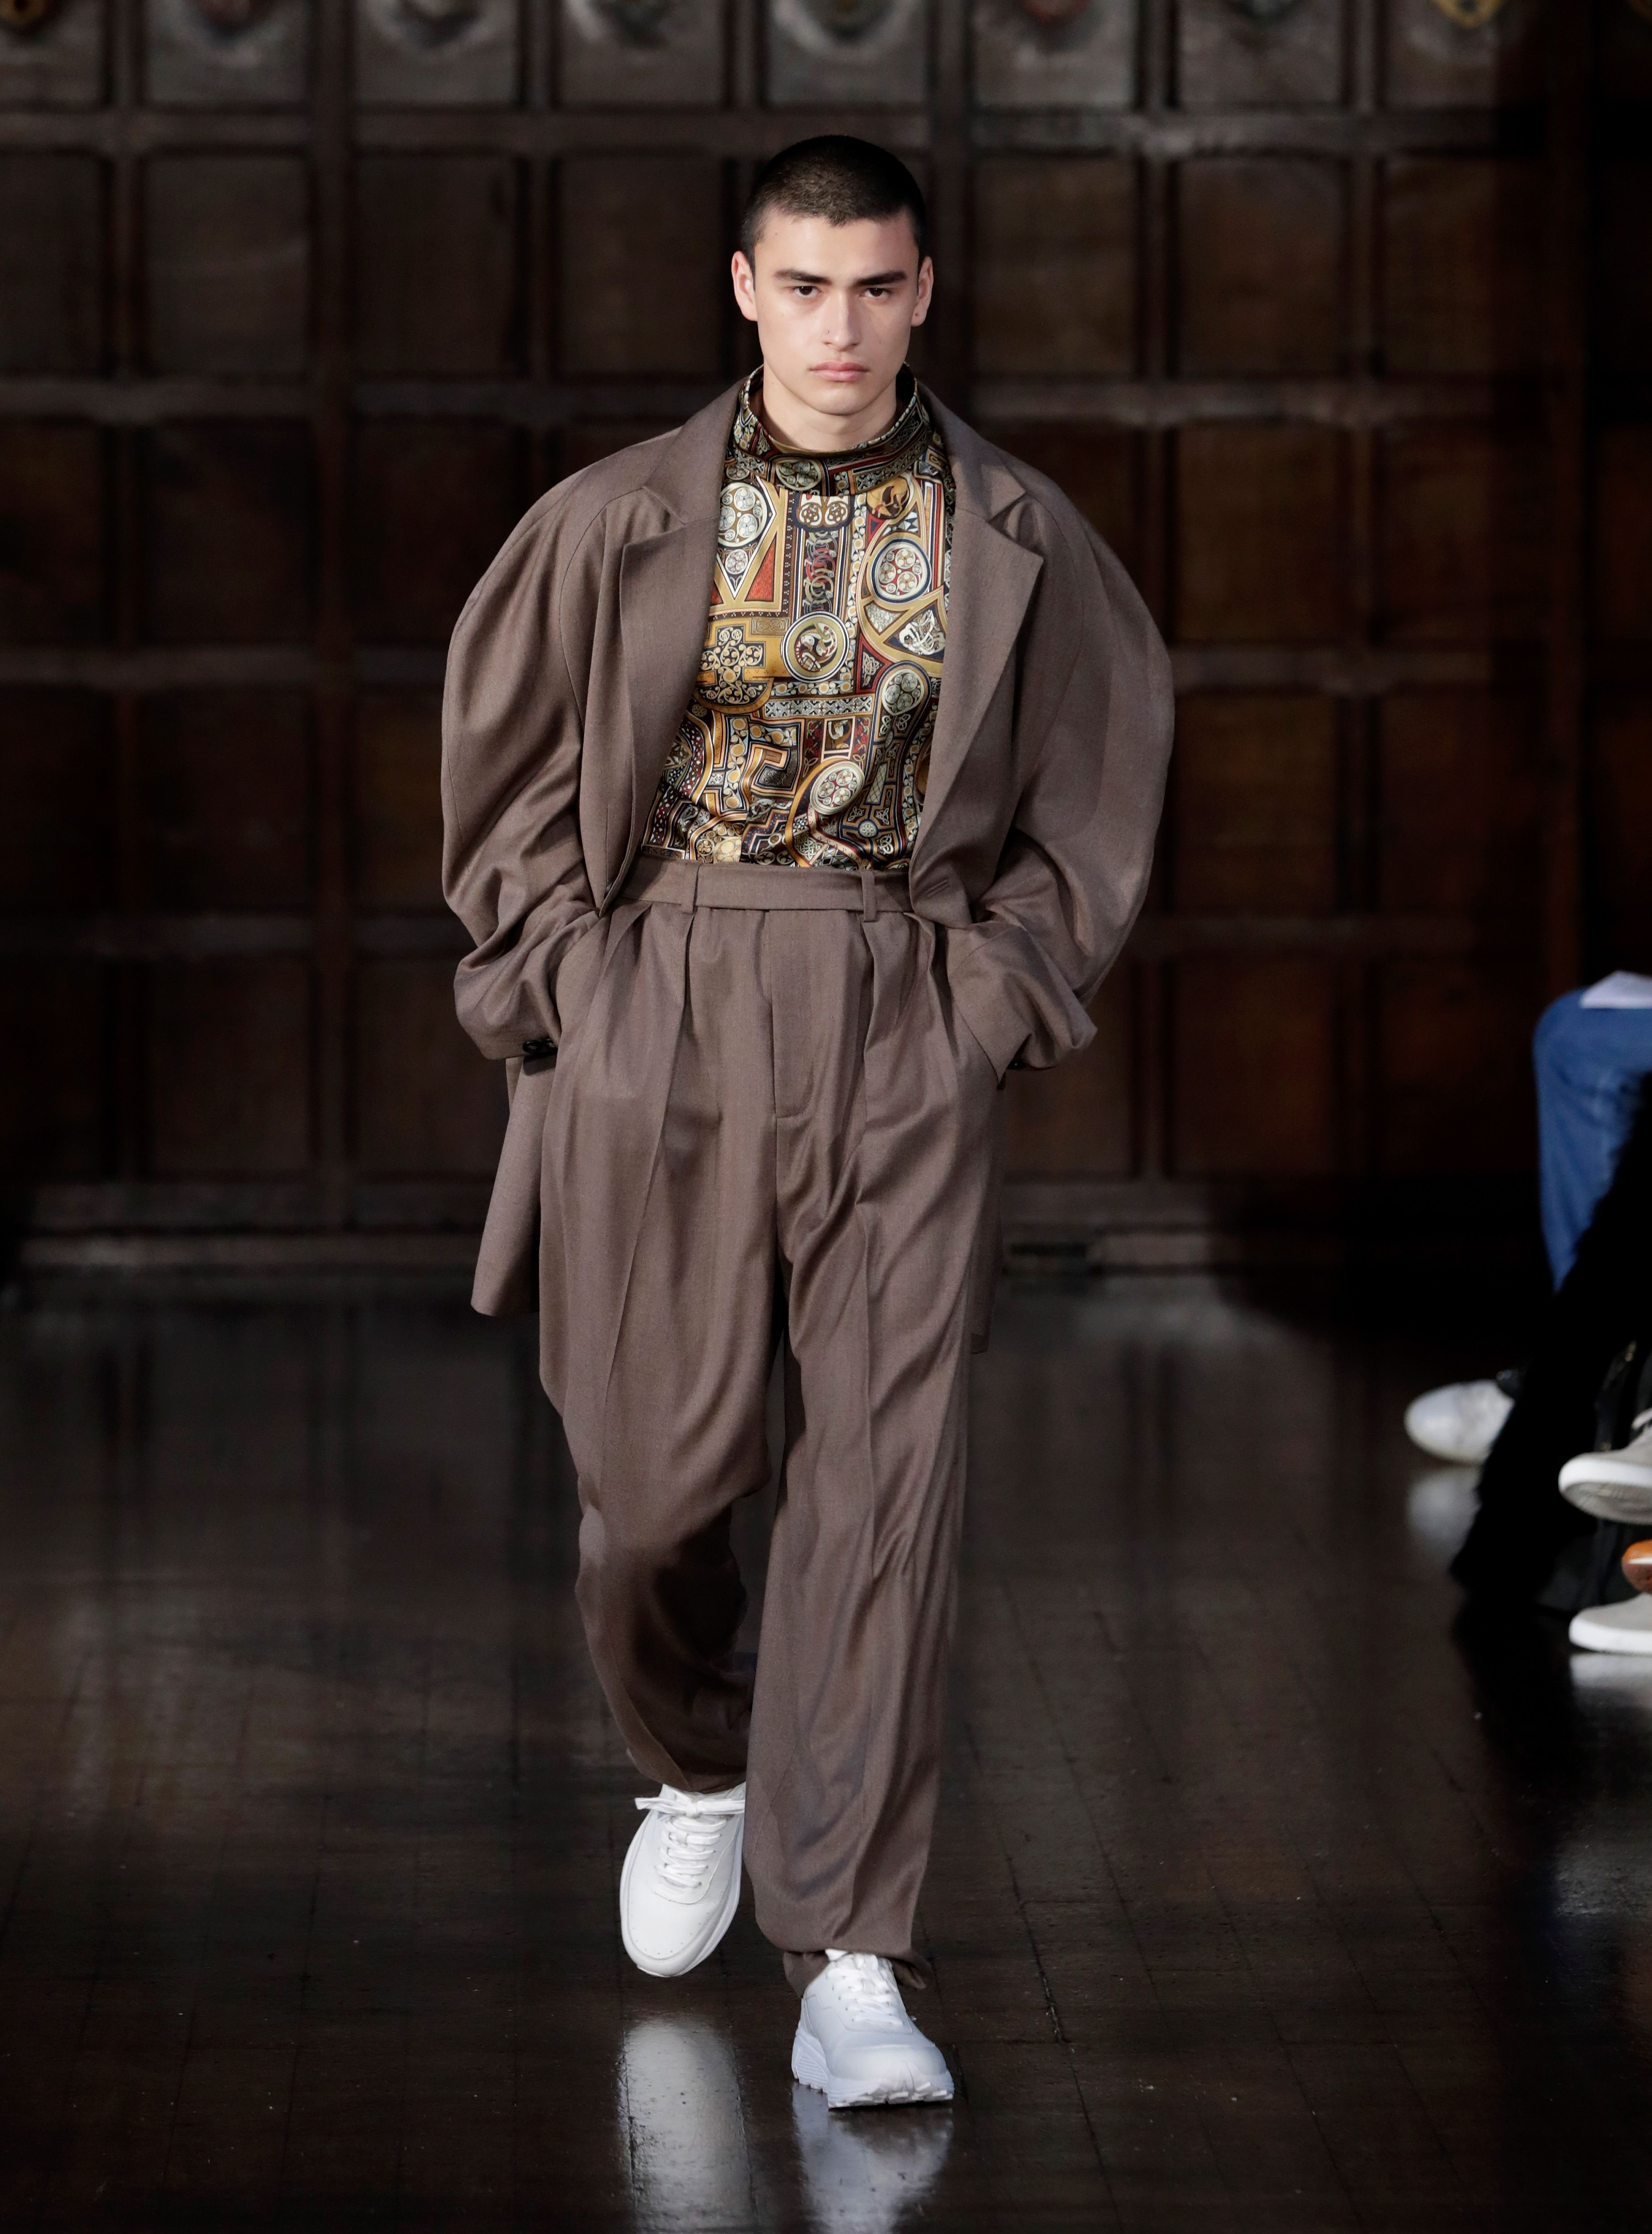 A model walks the runway at the Edward Crutchley show during London Fashion Week Men's January 2018 at the Ironmongers Hall on January 6, 2018 in London, England.